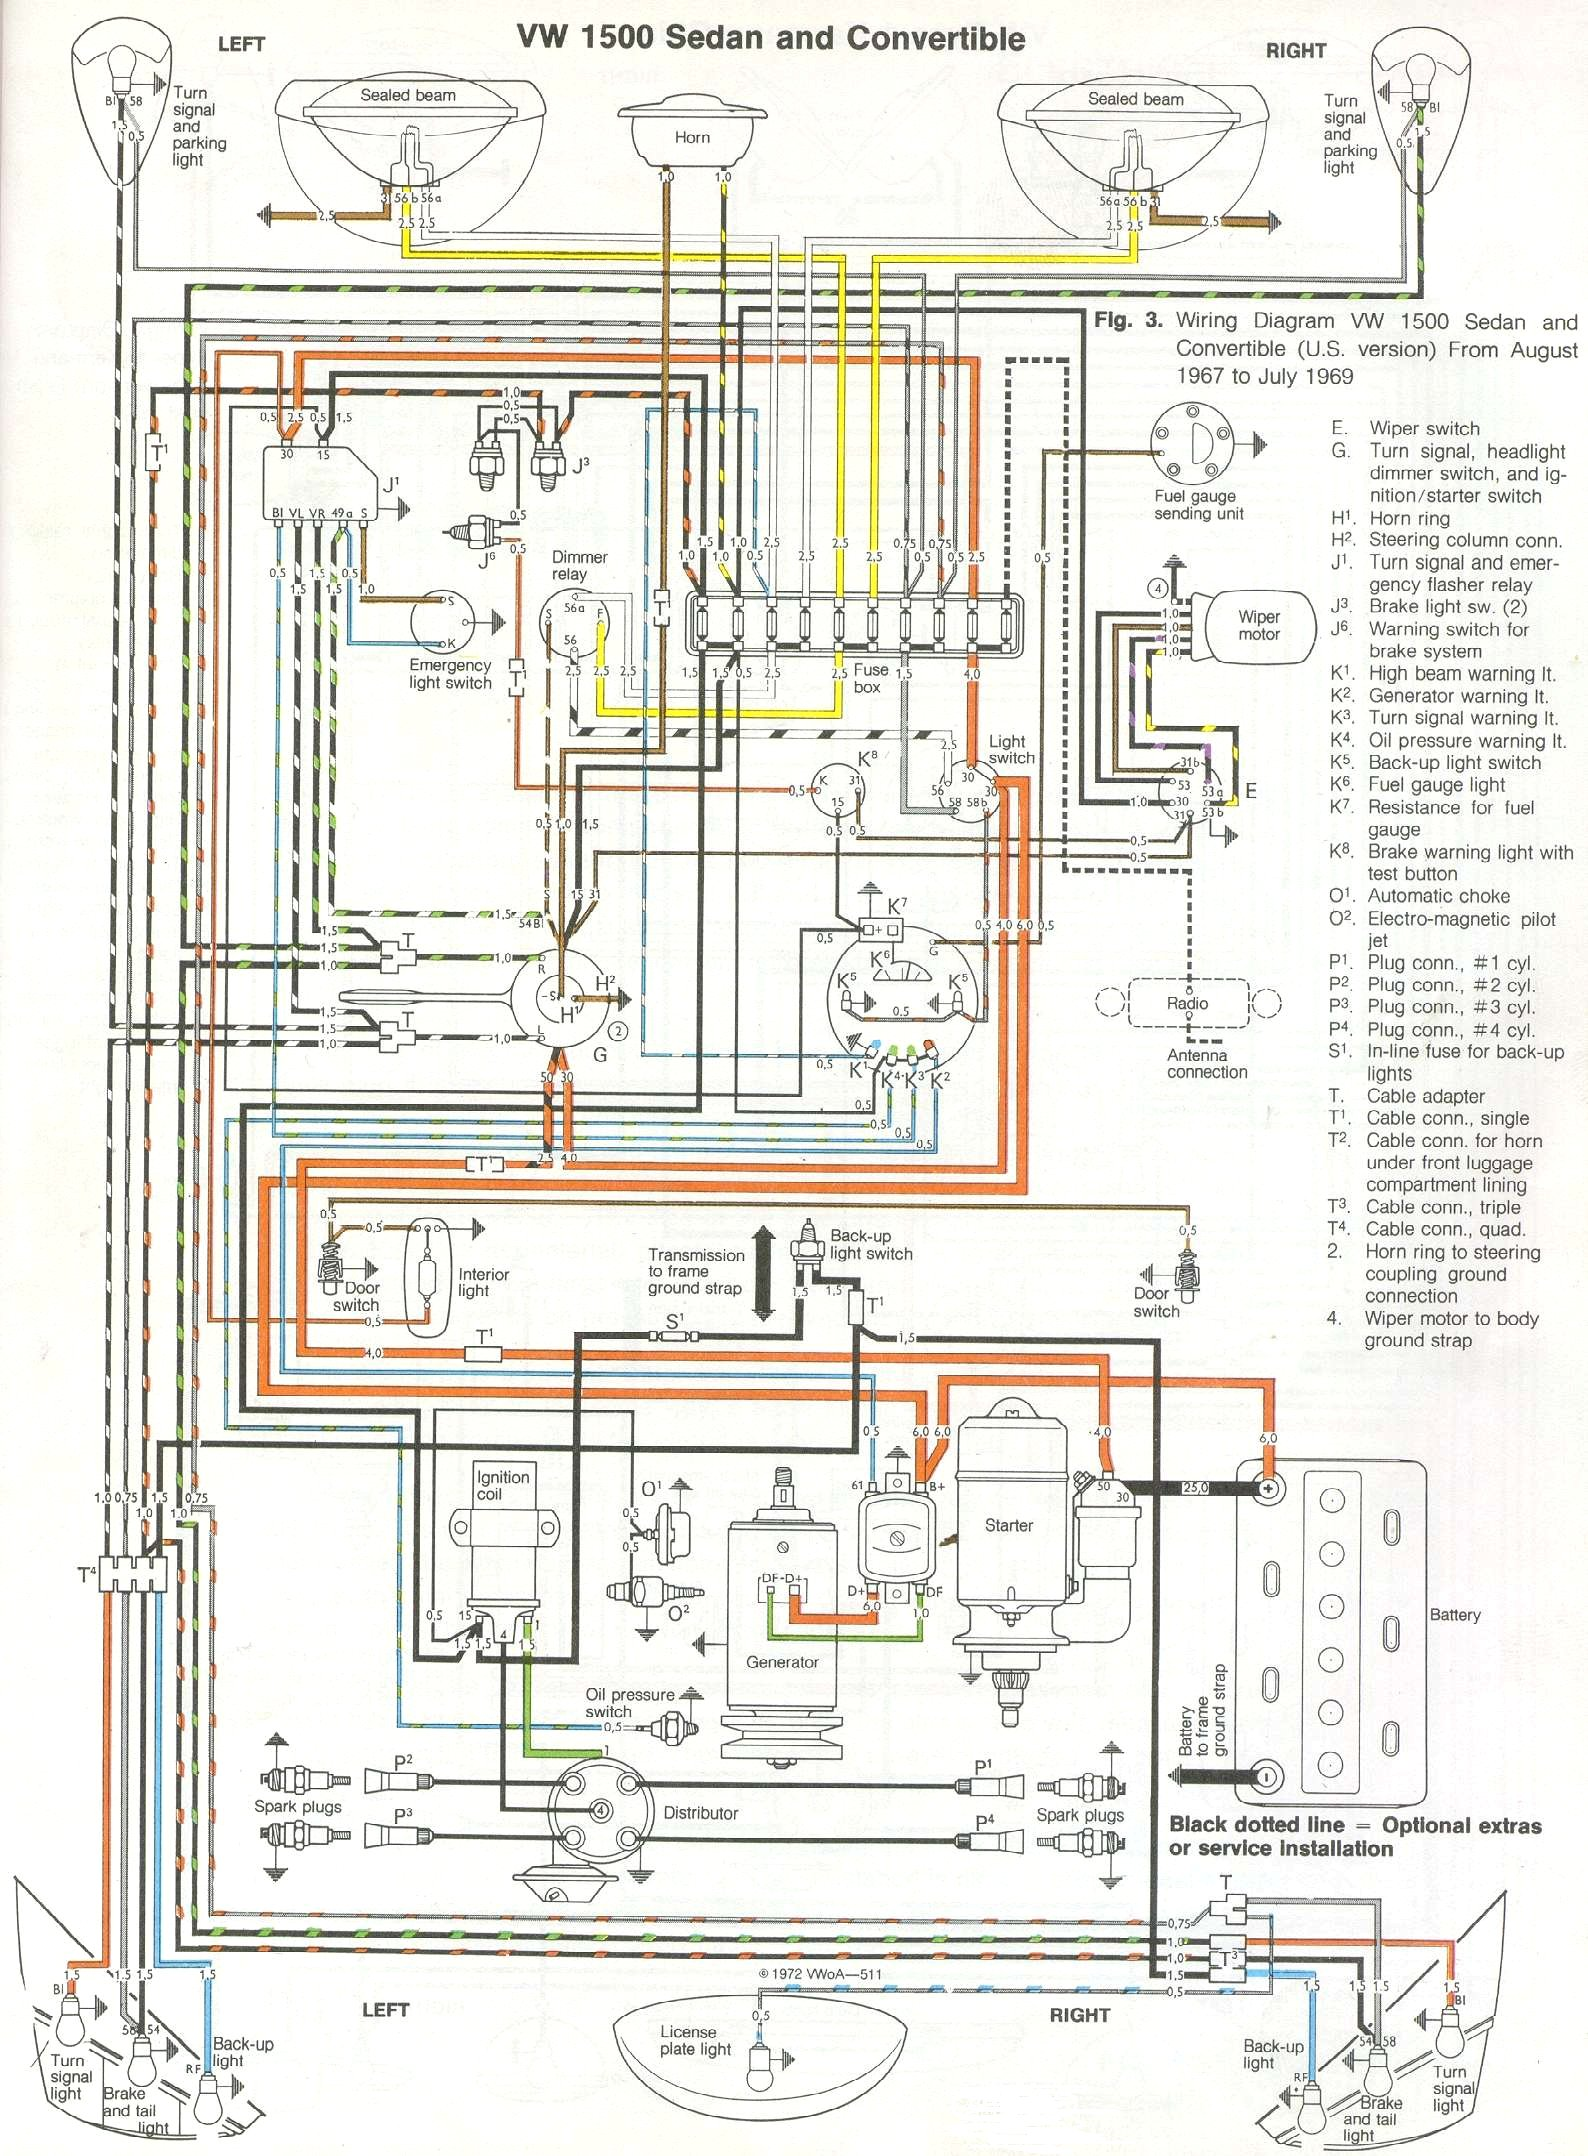 1969 71 beetle wiring diagram thegoldenbug com rh thegoldenbug com 1971 vw super beetle wiring diagram 1971 vw beetle electrical diagram